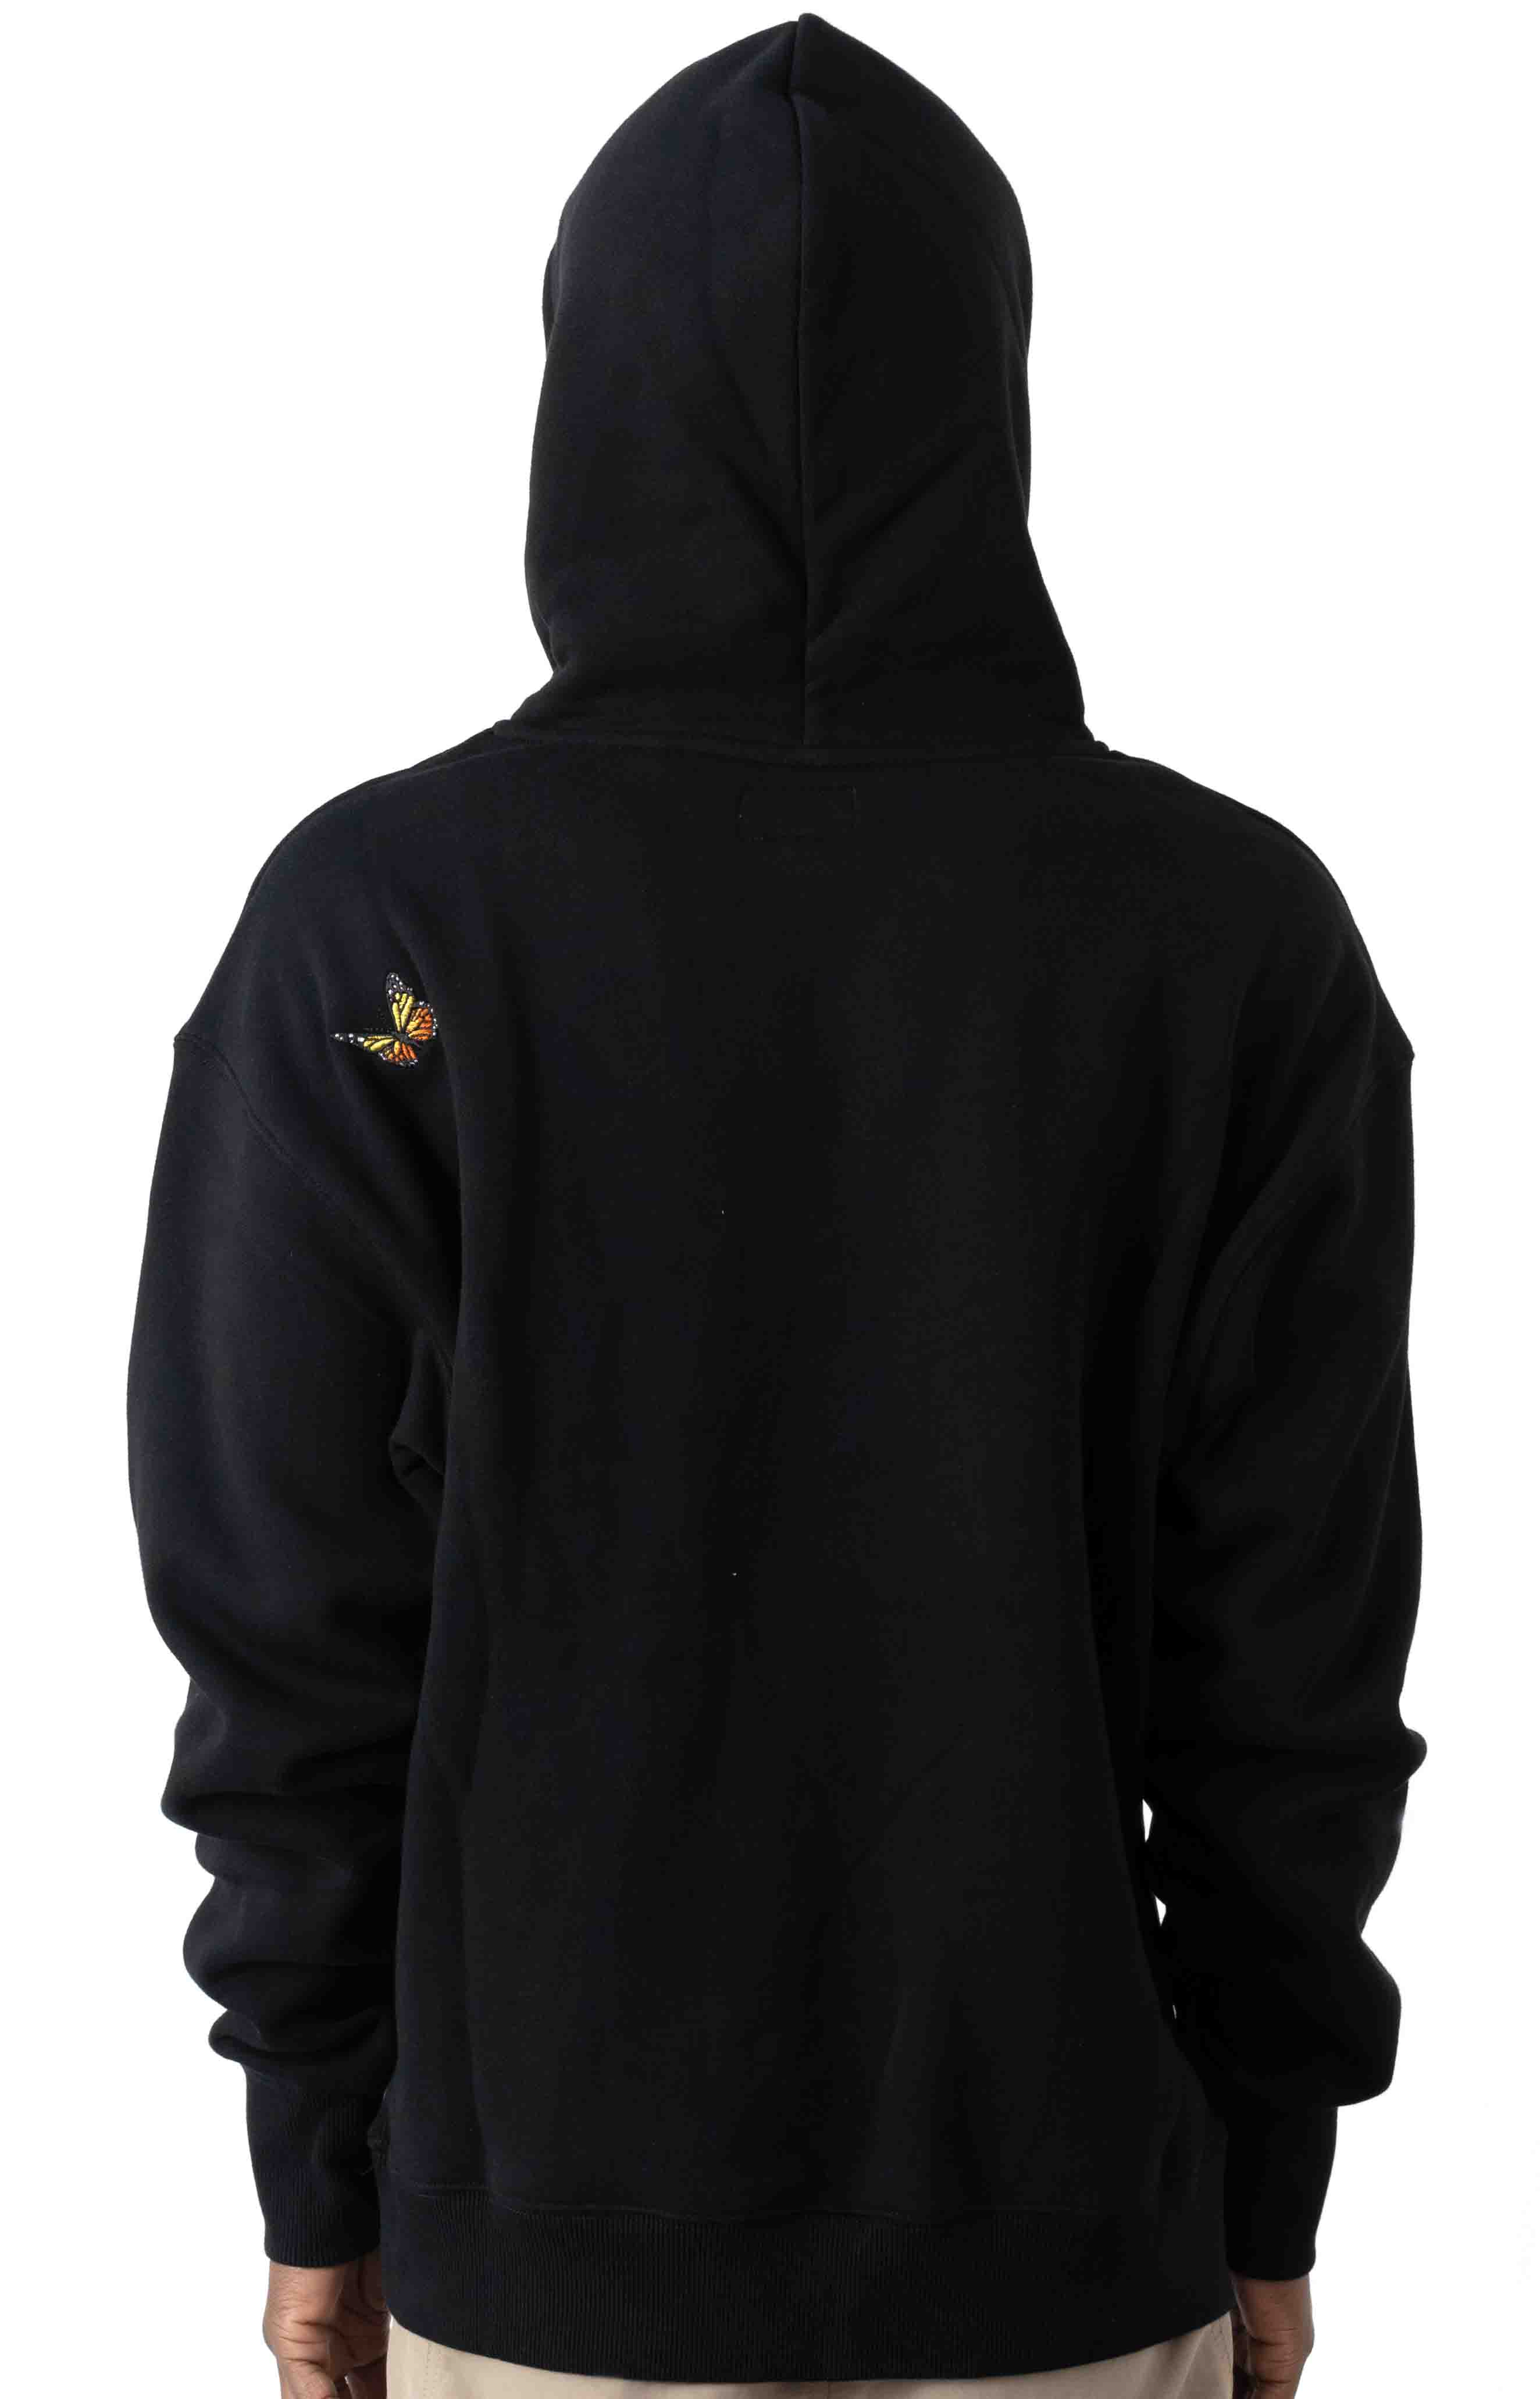 Butterfly Embroidered Pullover Hoodie - Black 3